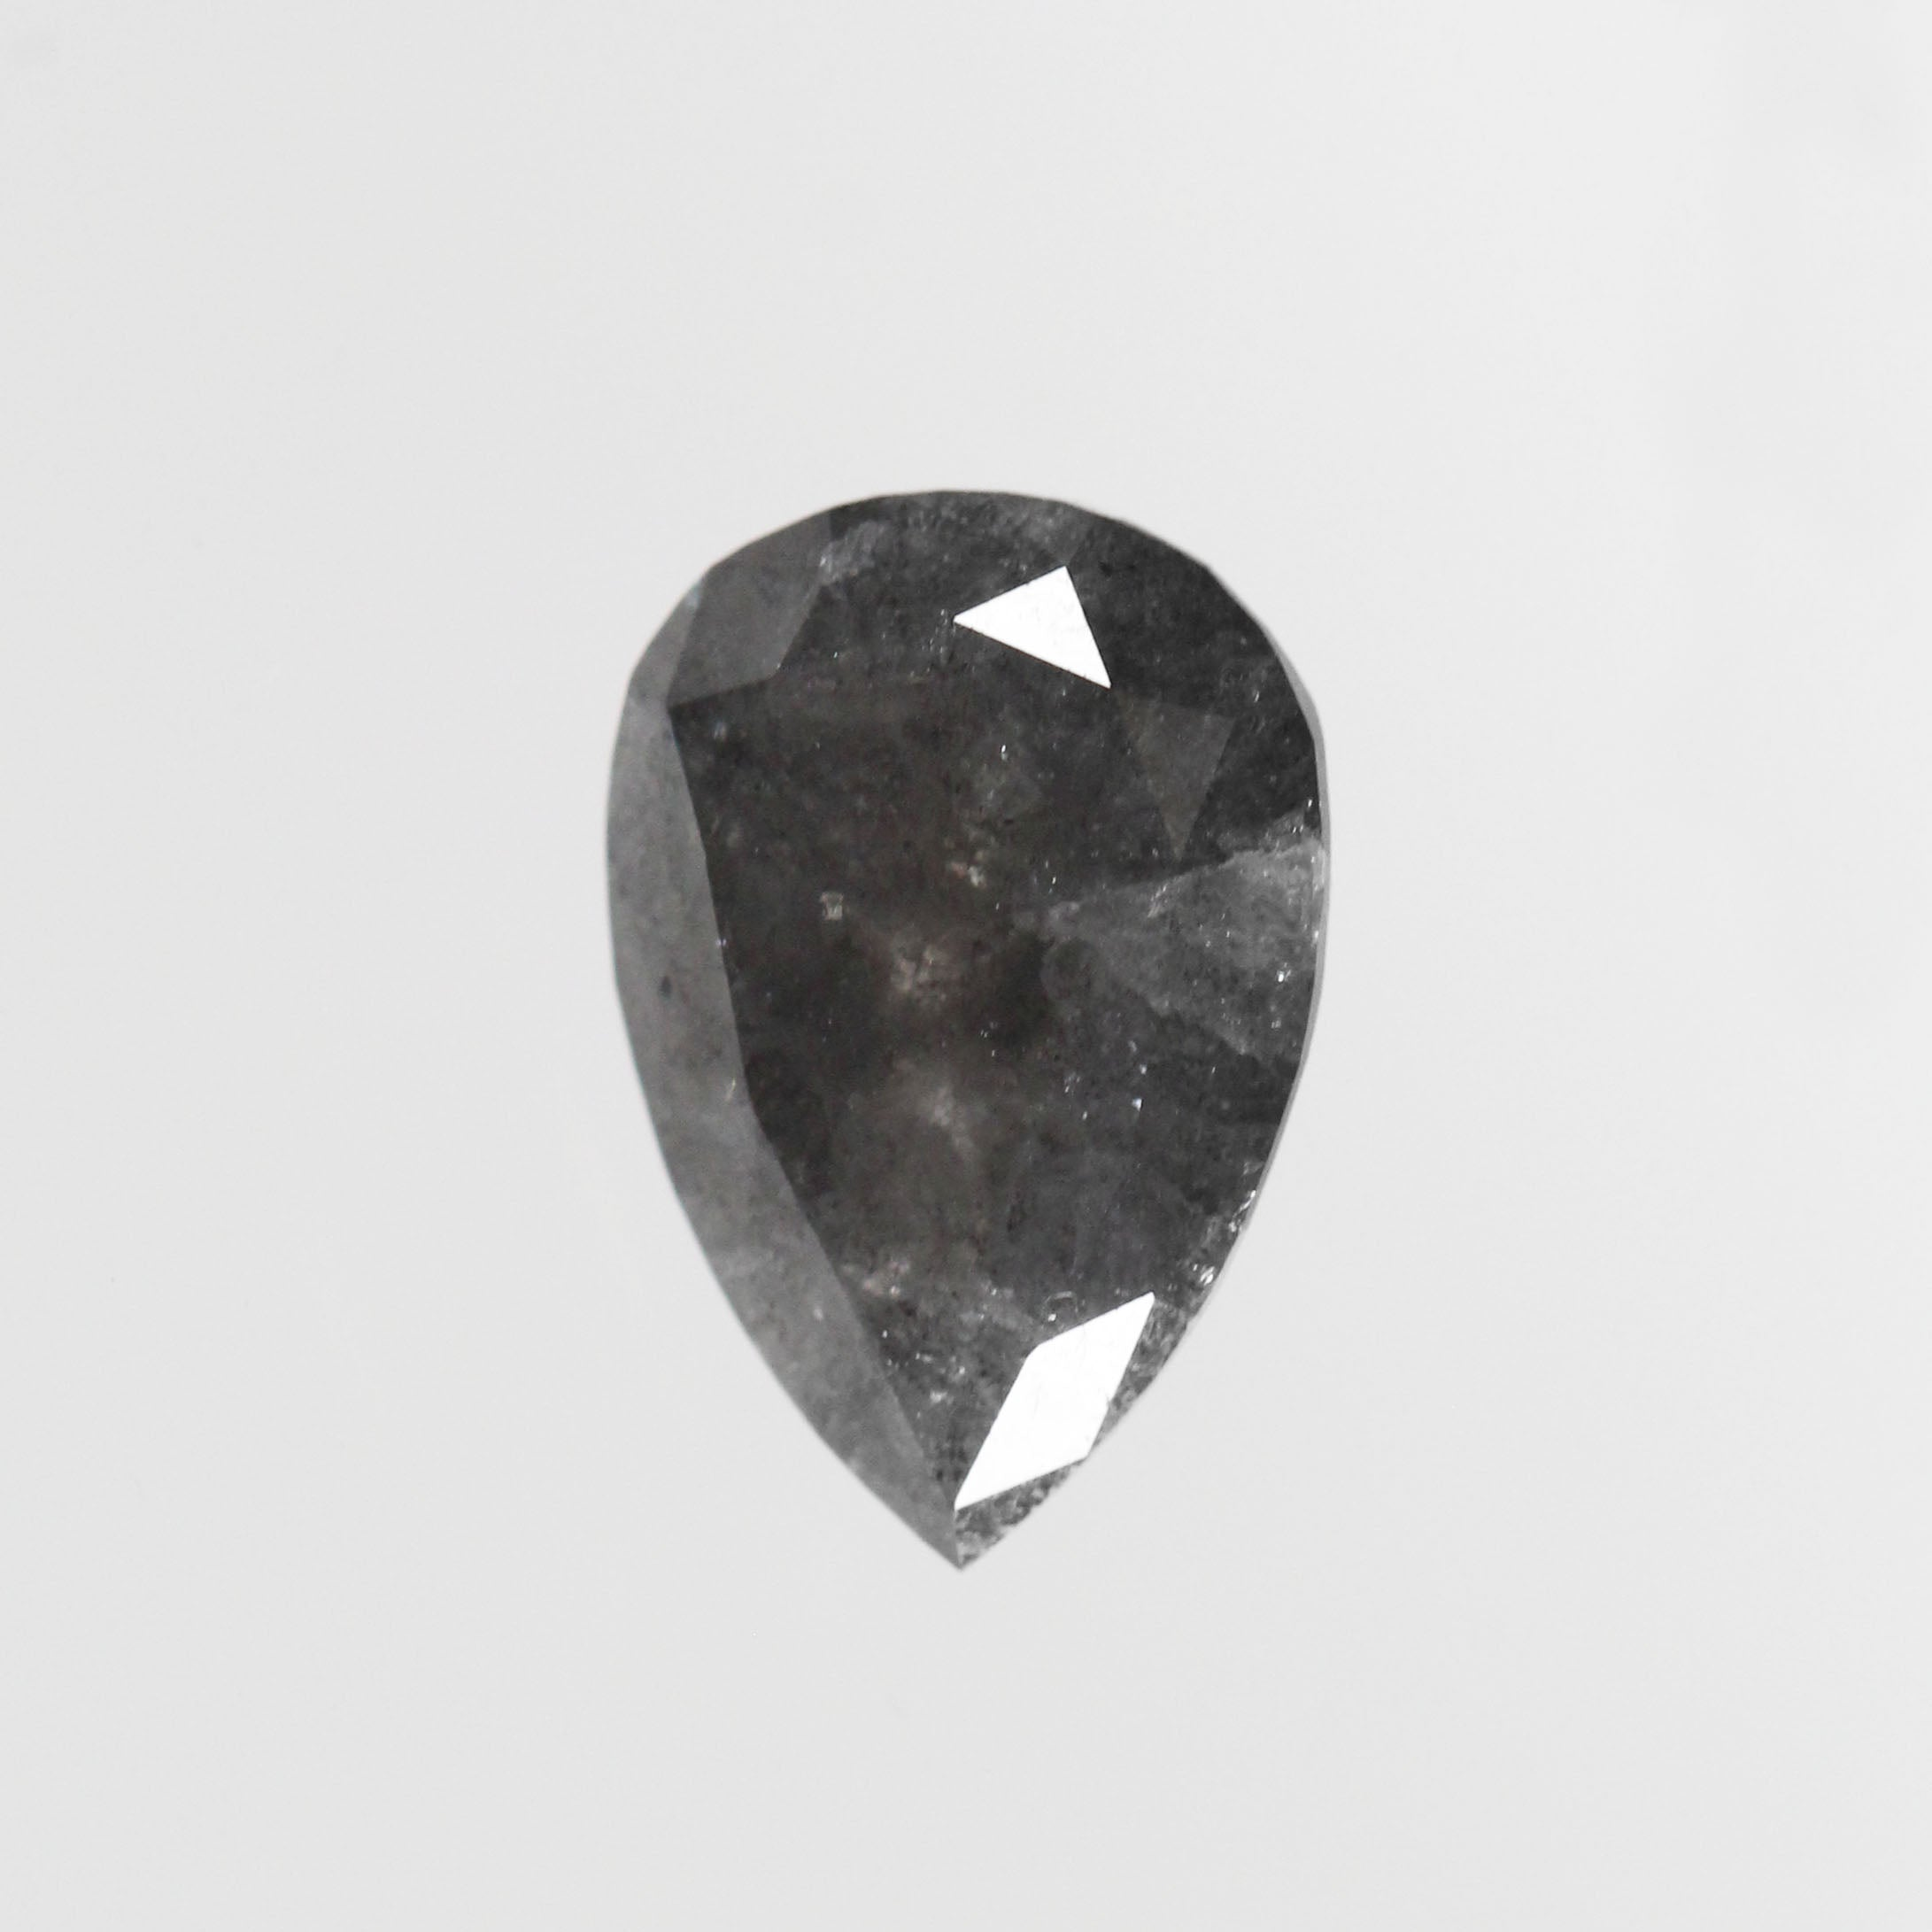 1.99 Carat Pear Celestial Diamond for Custom Work - Inventory Code PBB199 - Celestial Diamonds ® by Midwinter Co.